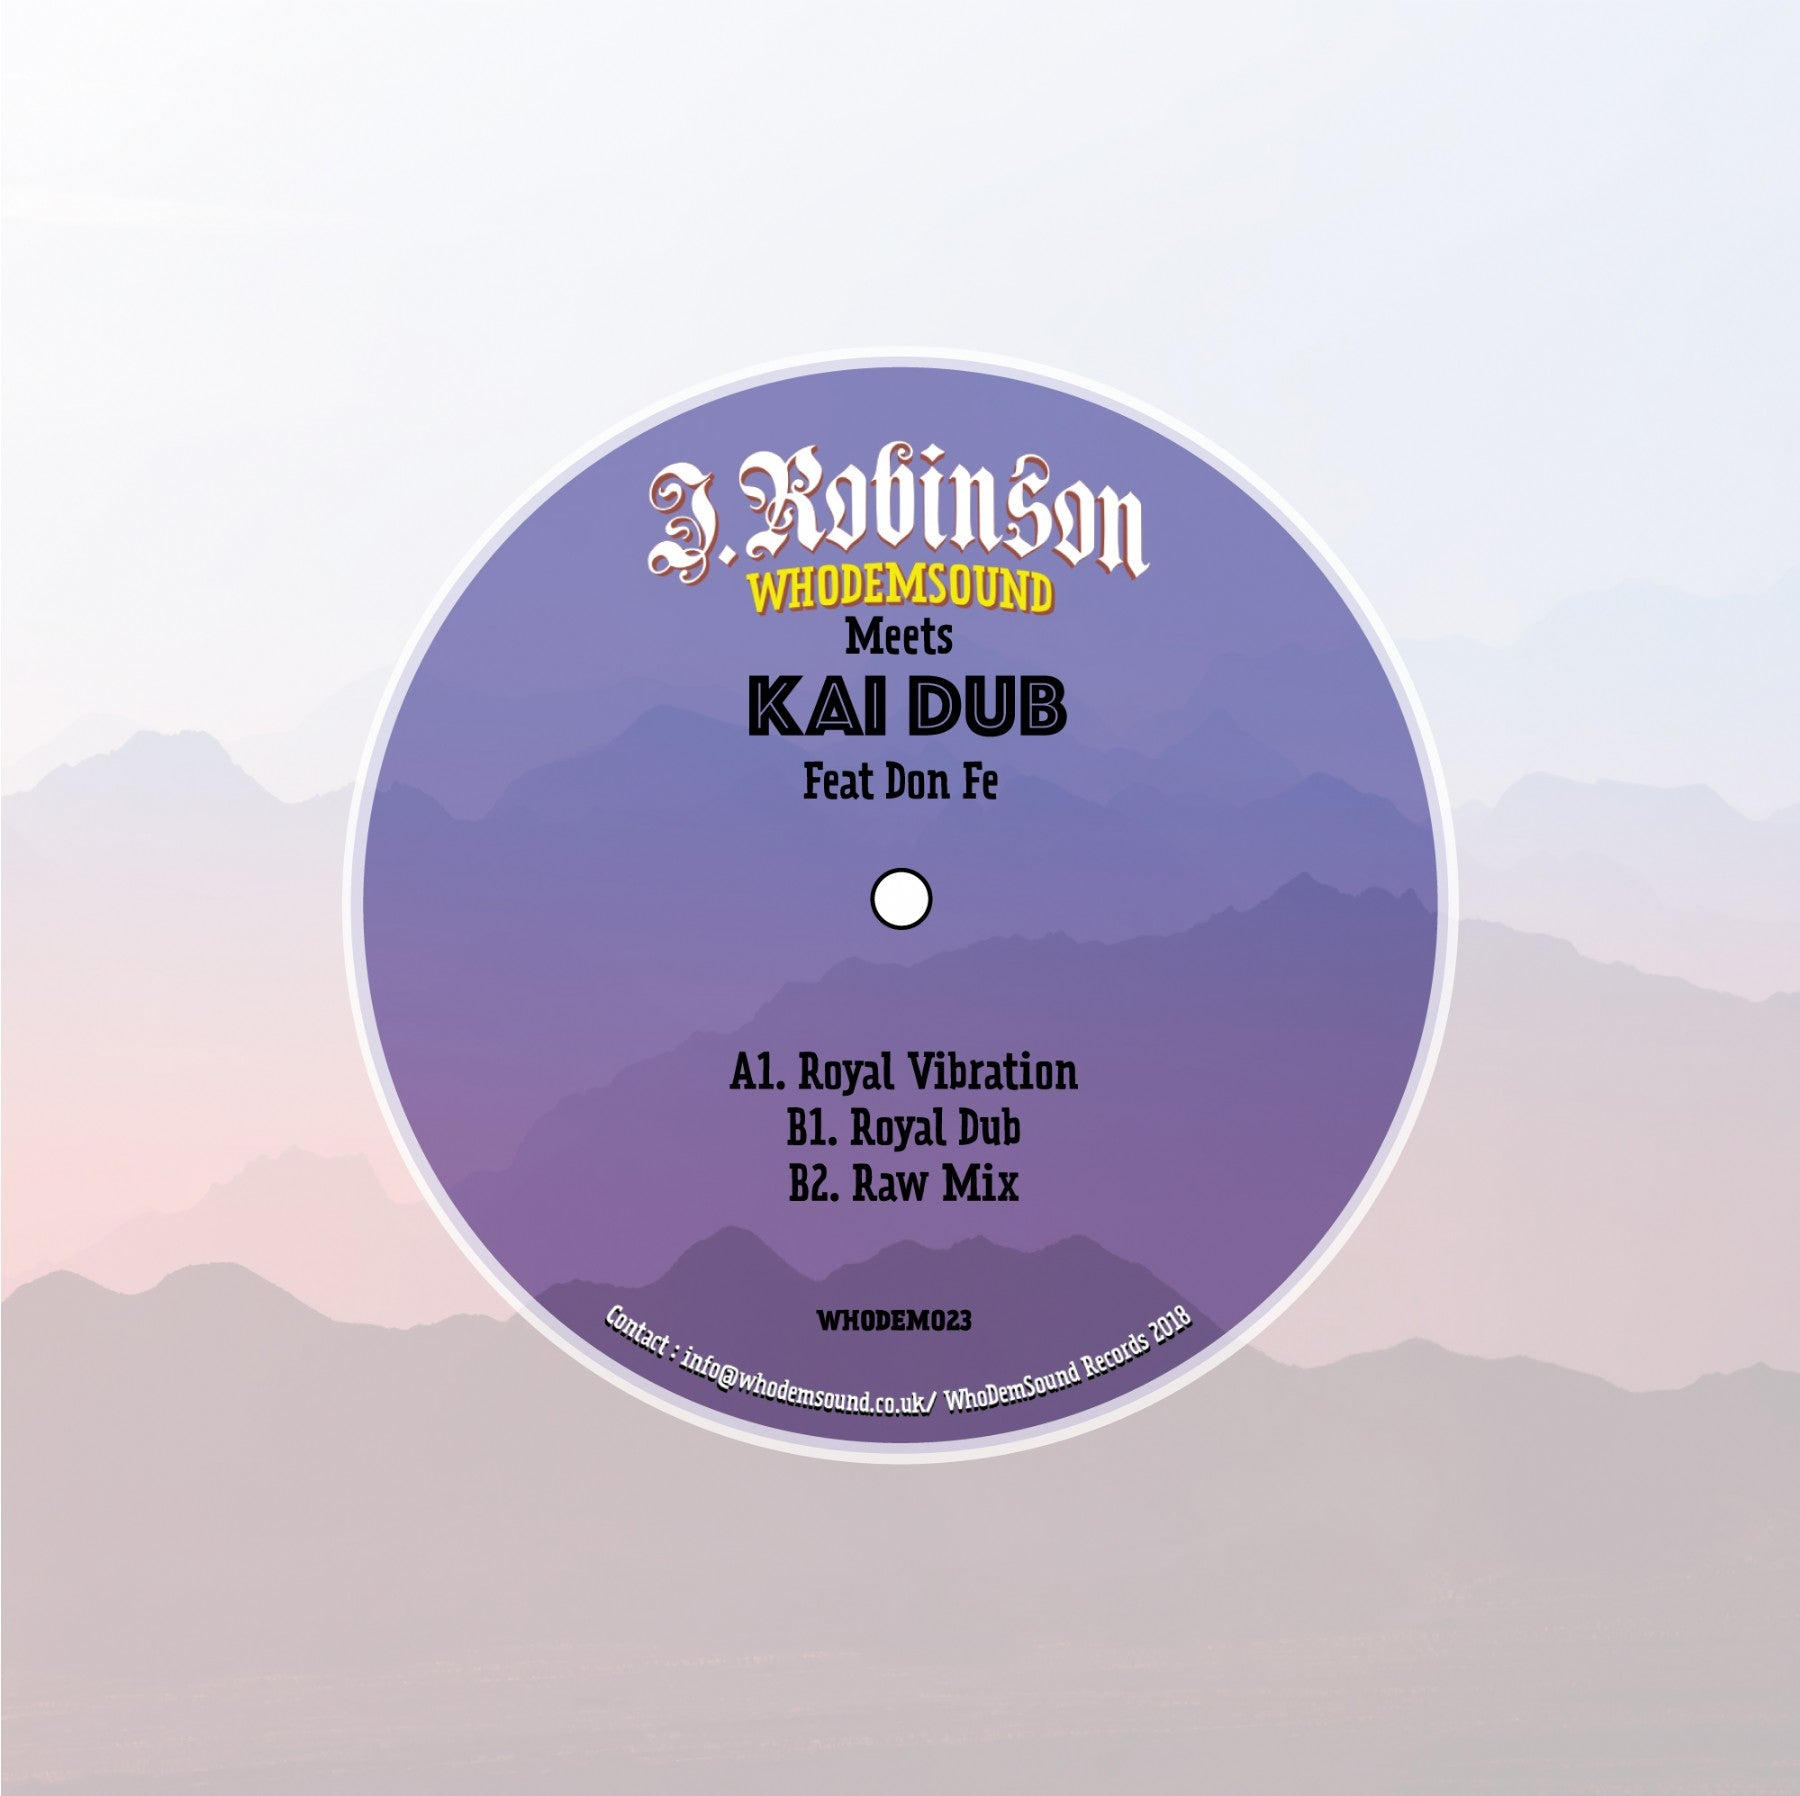 "J.Robinson WhoDemSound Meets Kai Dub Feat Don Fe (180g 12"")"